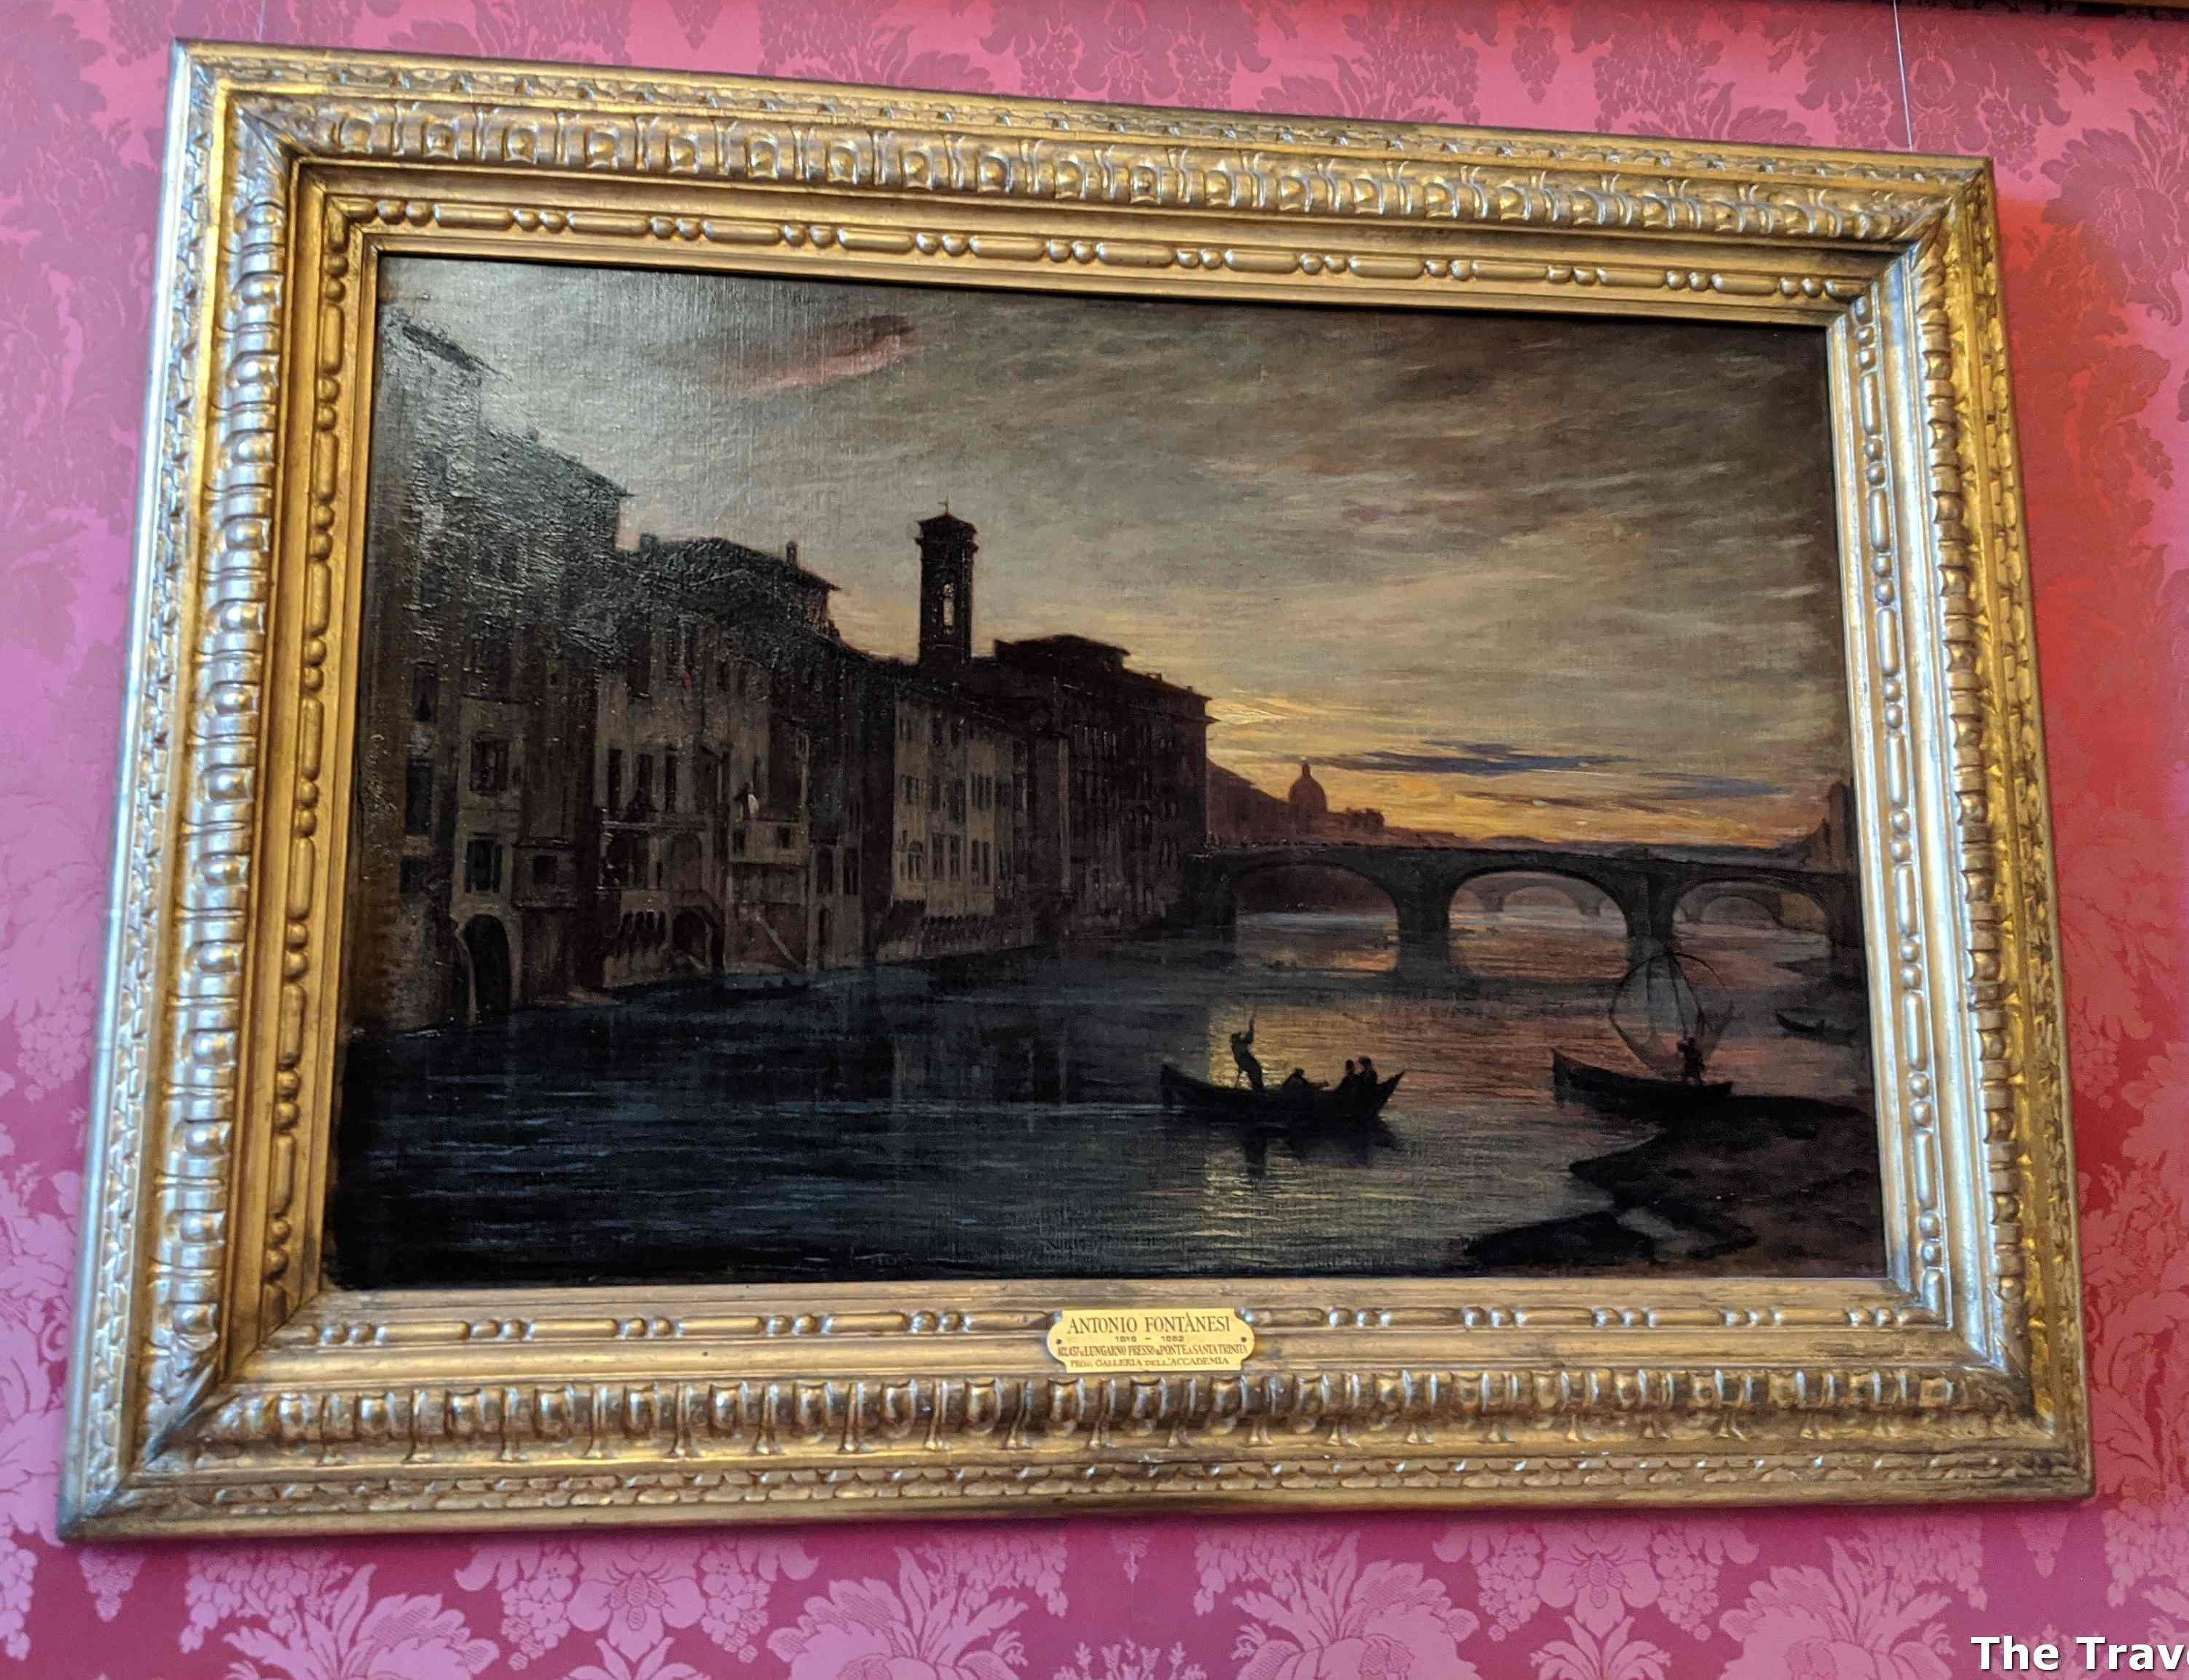 The Arno River And The Holy Trinity Bridge In Florence by Antonio Fontanesi